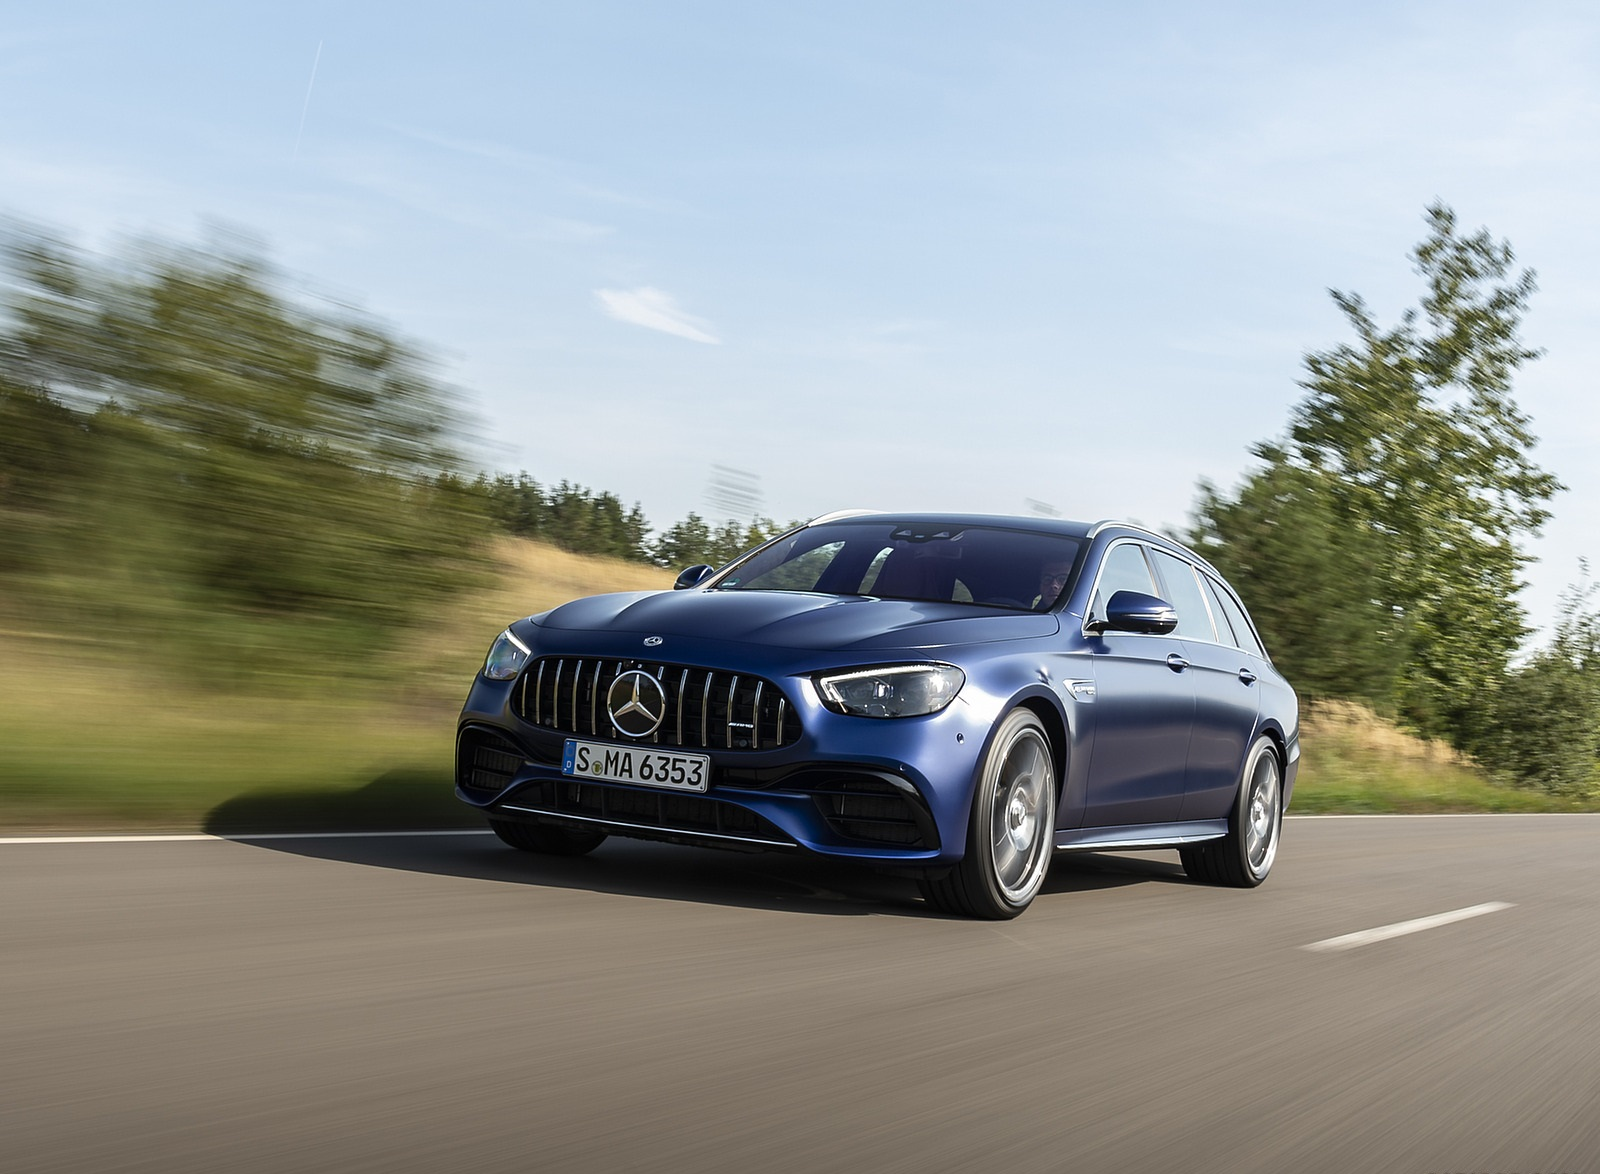 2021 Mercedes-AMG E 63 S Estate 4MATIC+ (Color: Designo Magno Brilliant Blue) Front Three-Quarter Wallpapers (2)